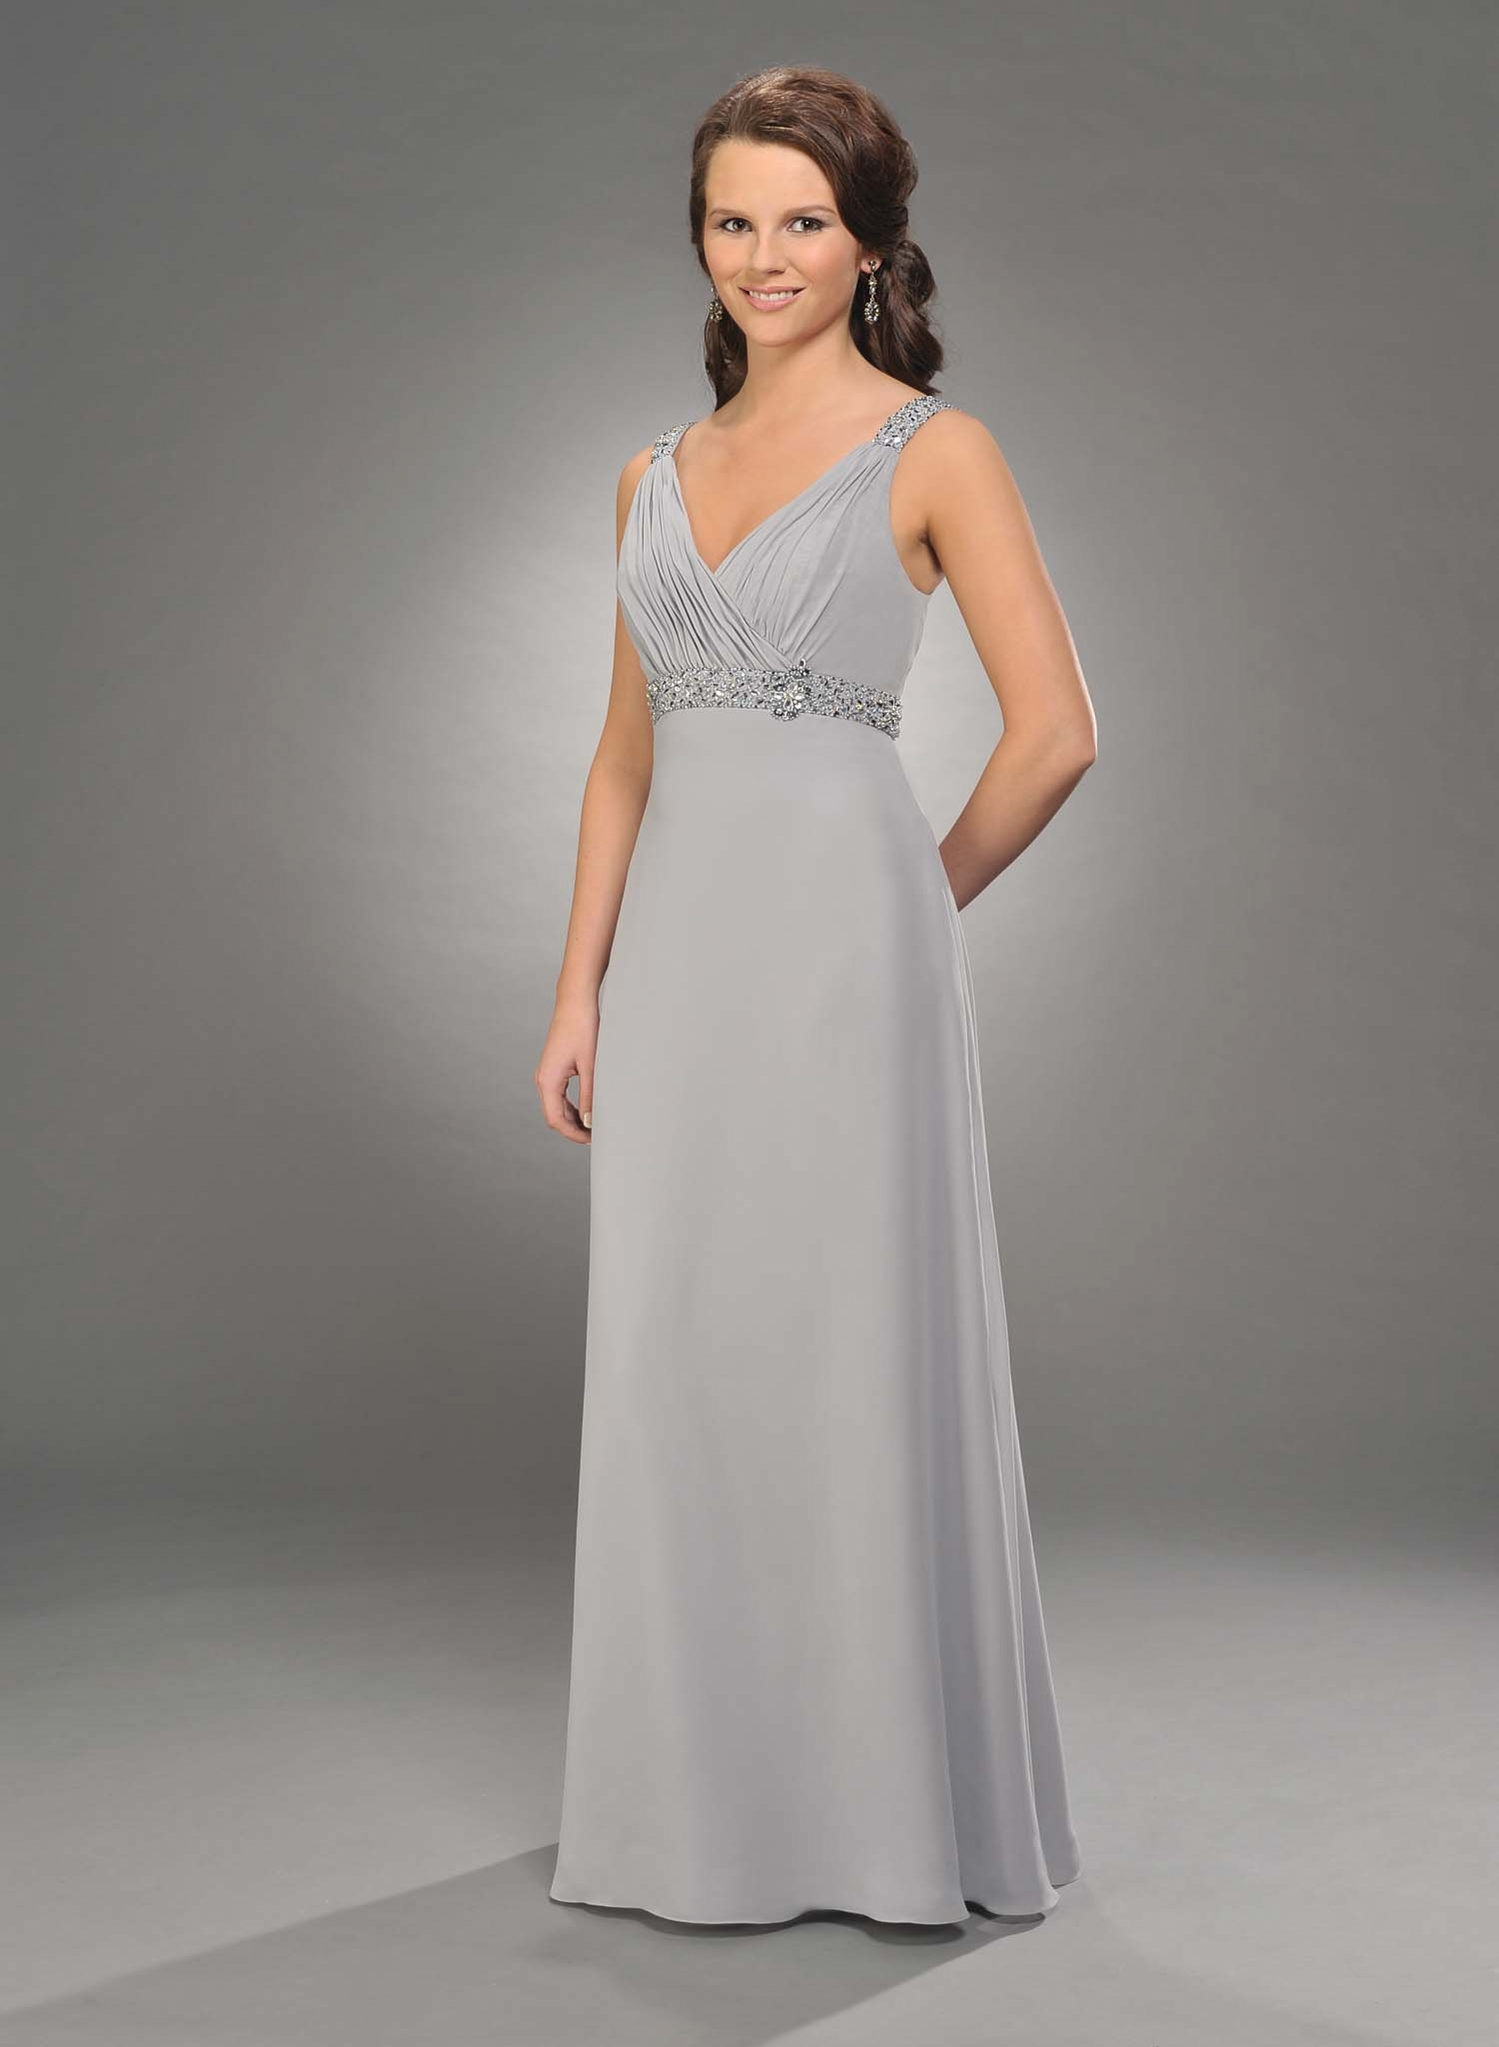 Silver Empire V Neck And Strap Low Back Full Length Chiffon Prom Dresses With Beading And Drapes